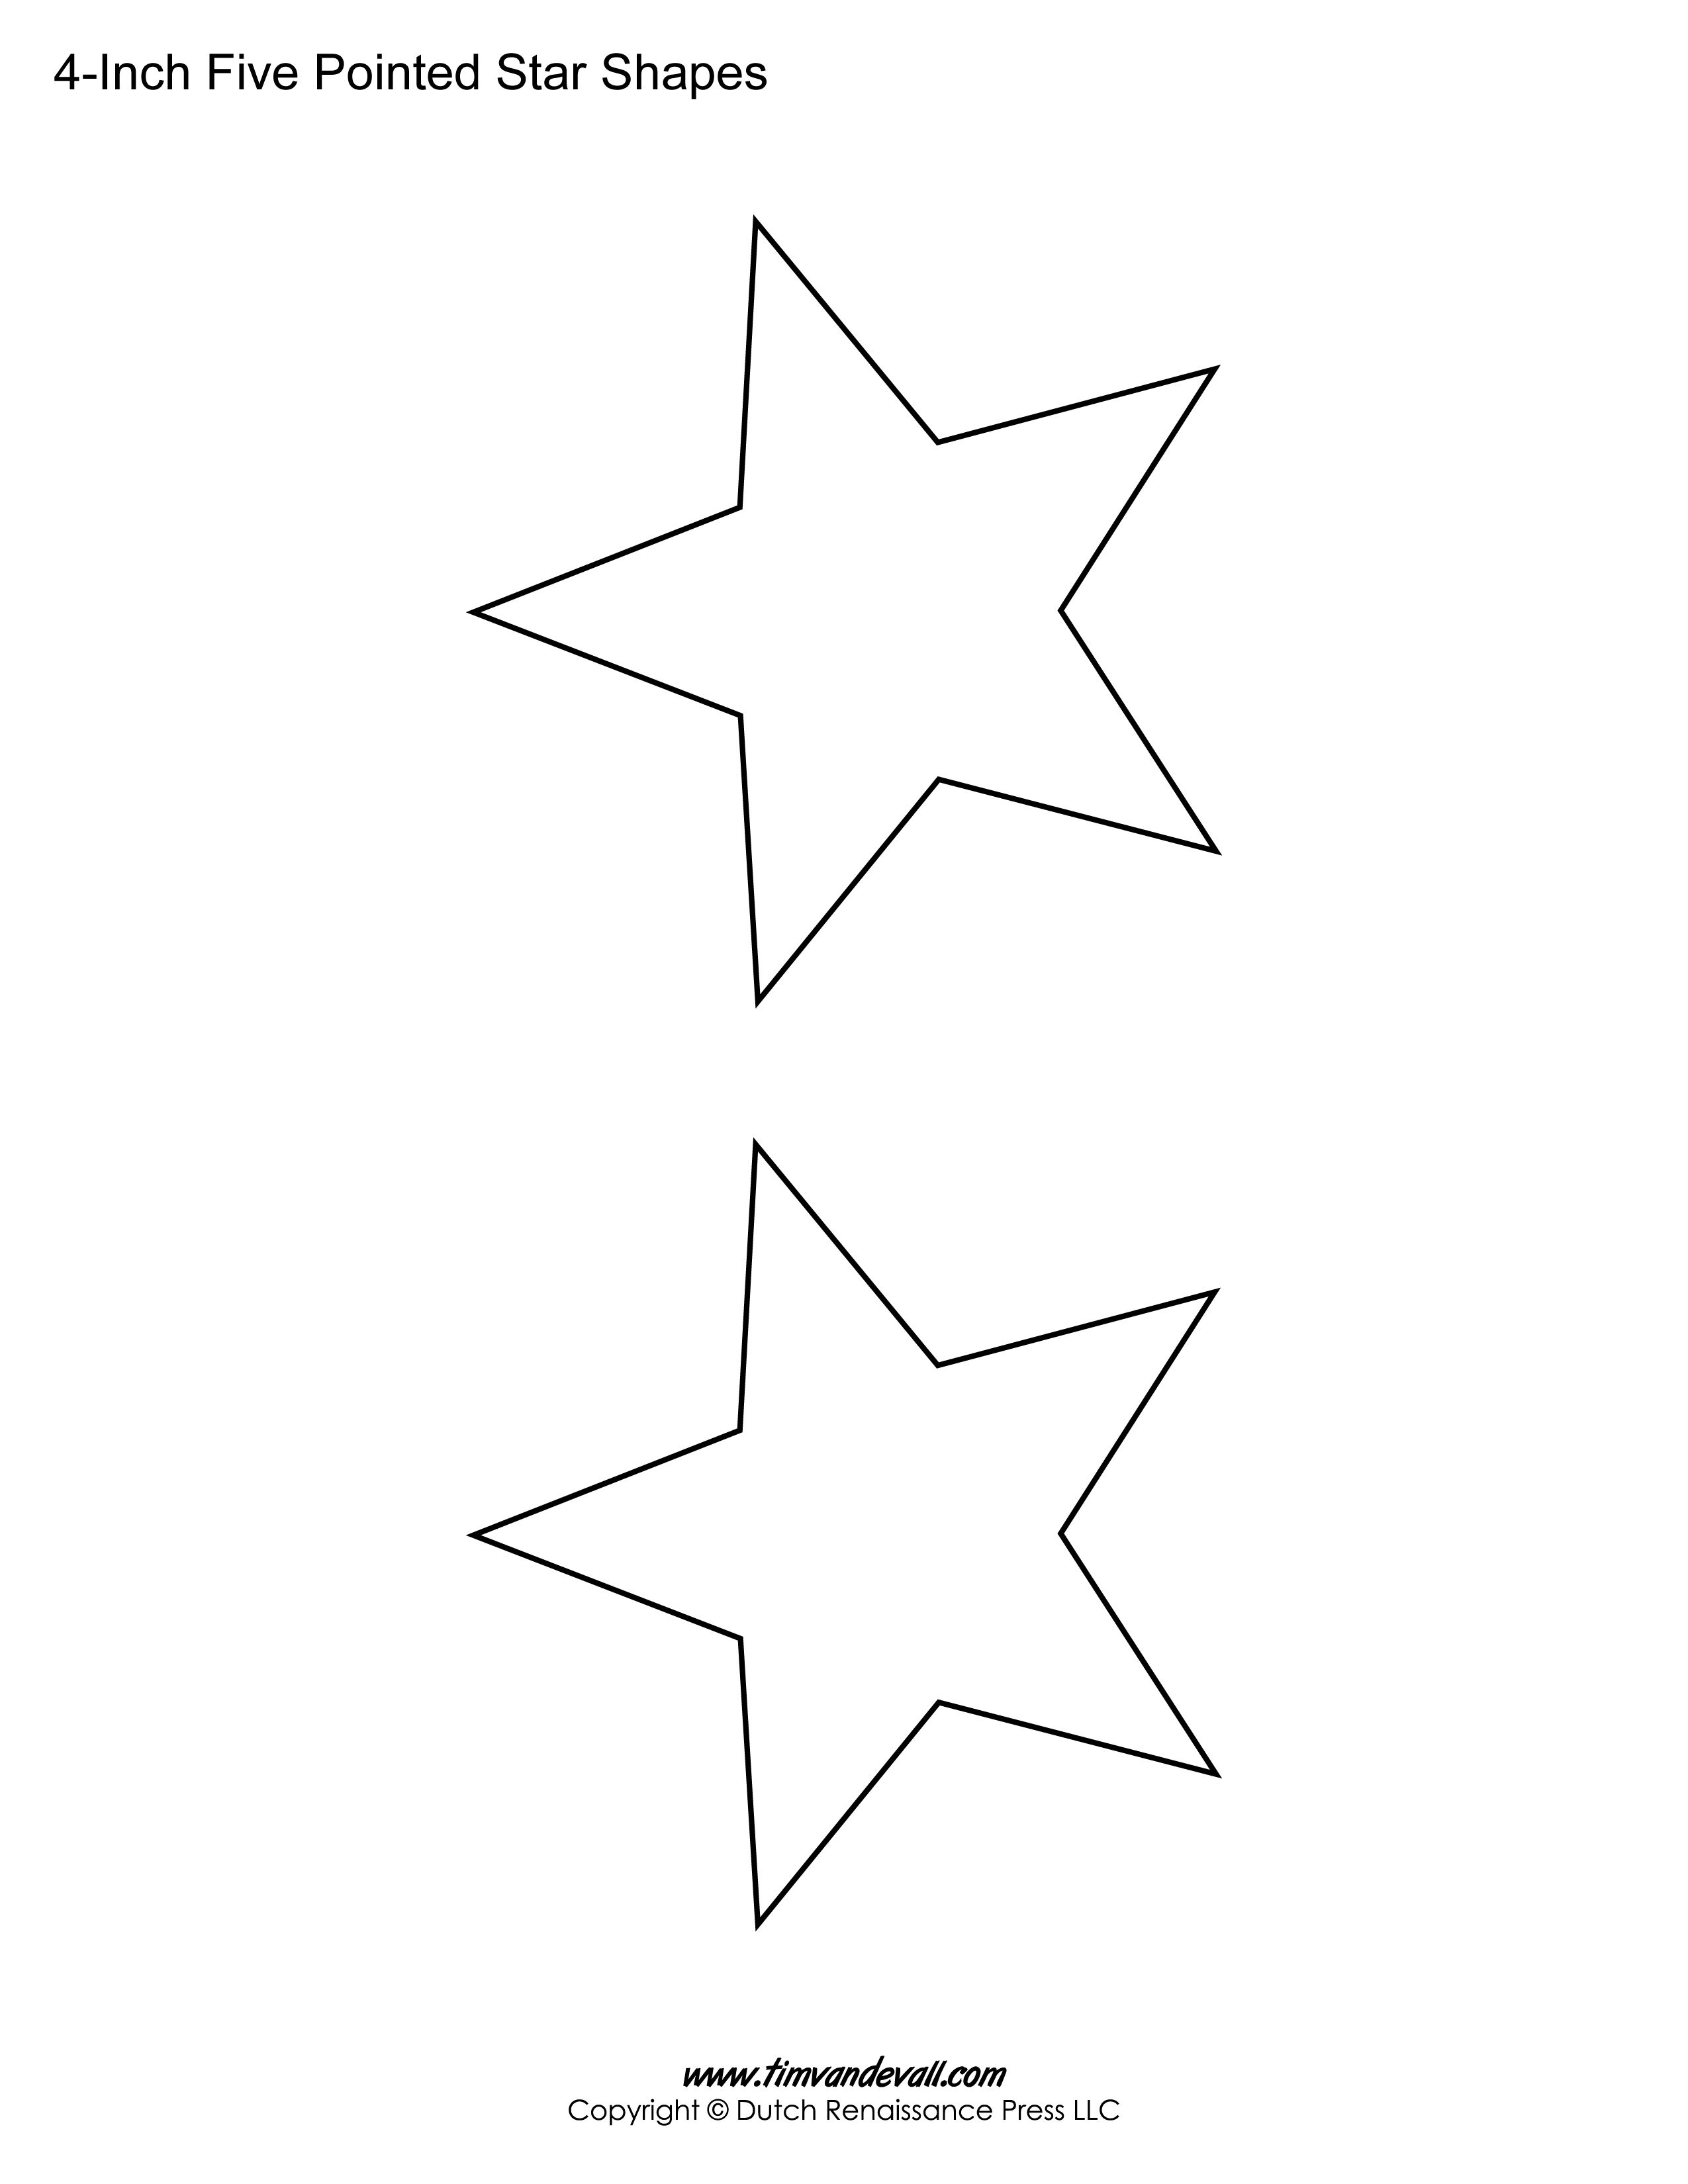 printable five pointed star shapes for art projects